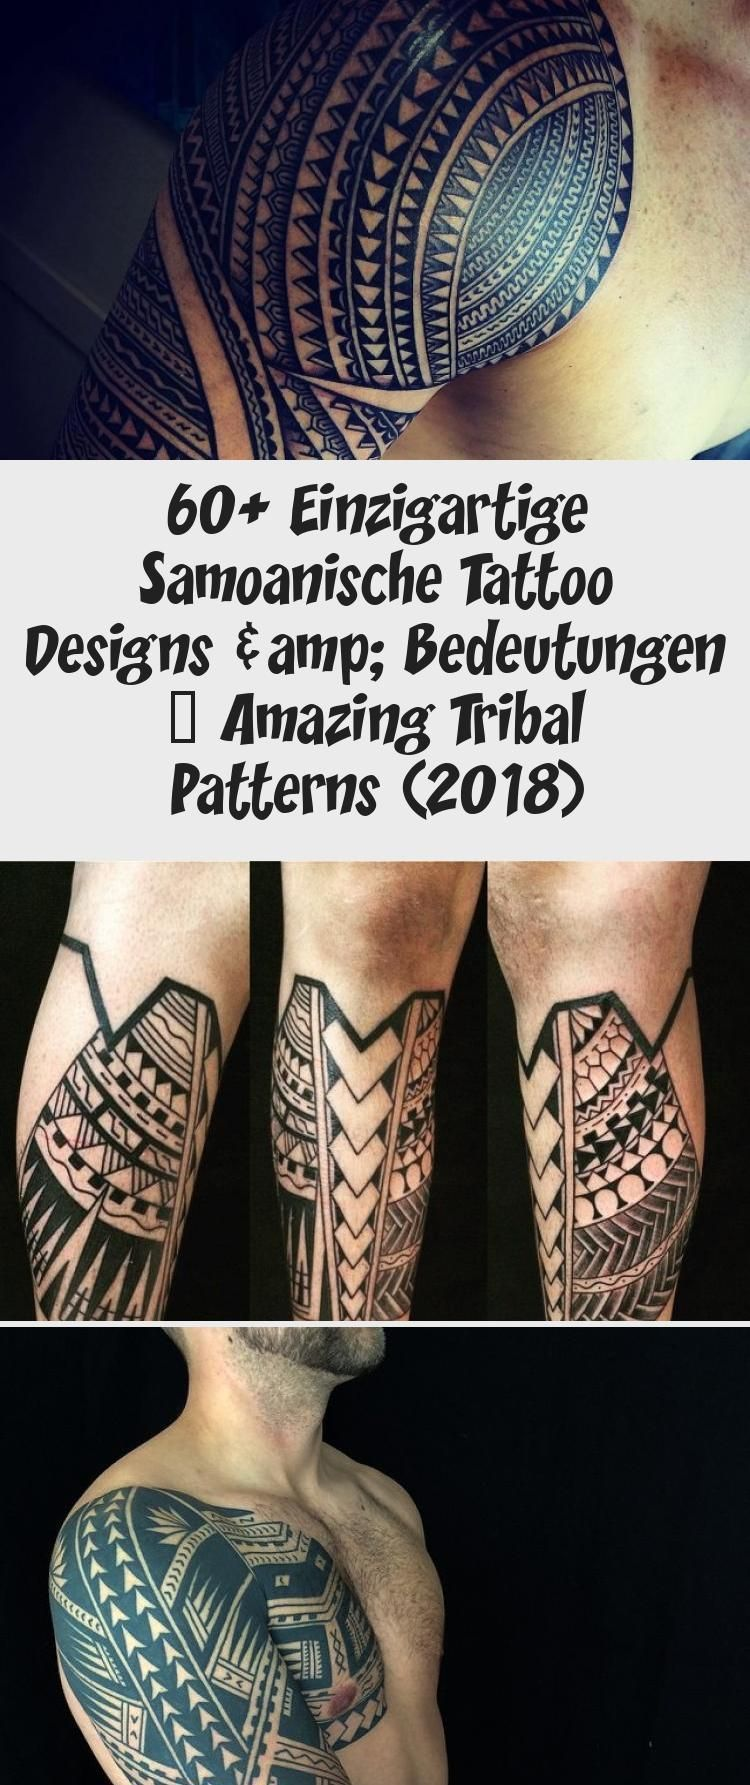 60+ Unique Samoan Tattoo Designs & Meanings Amazing